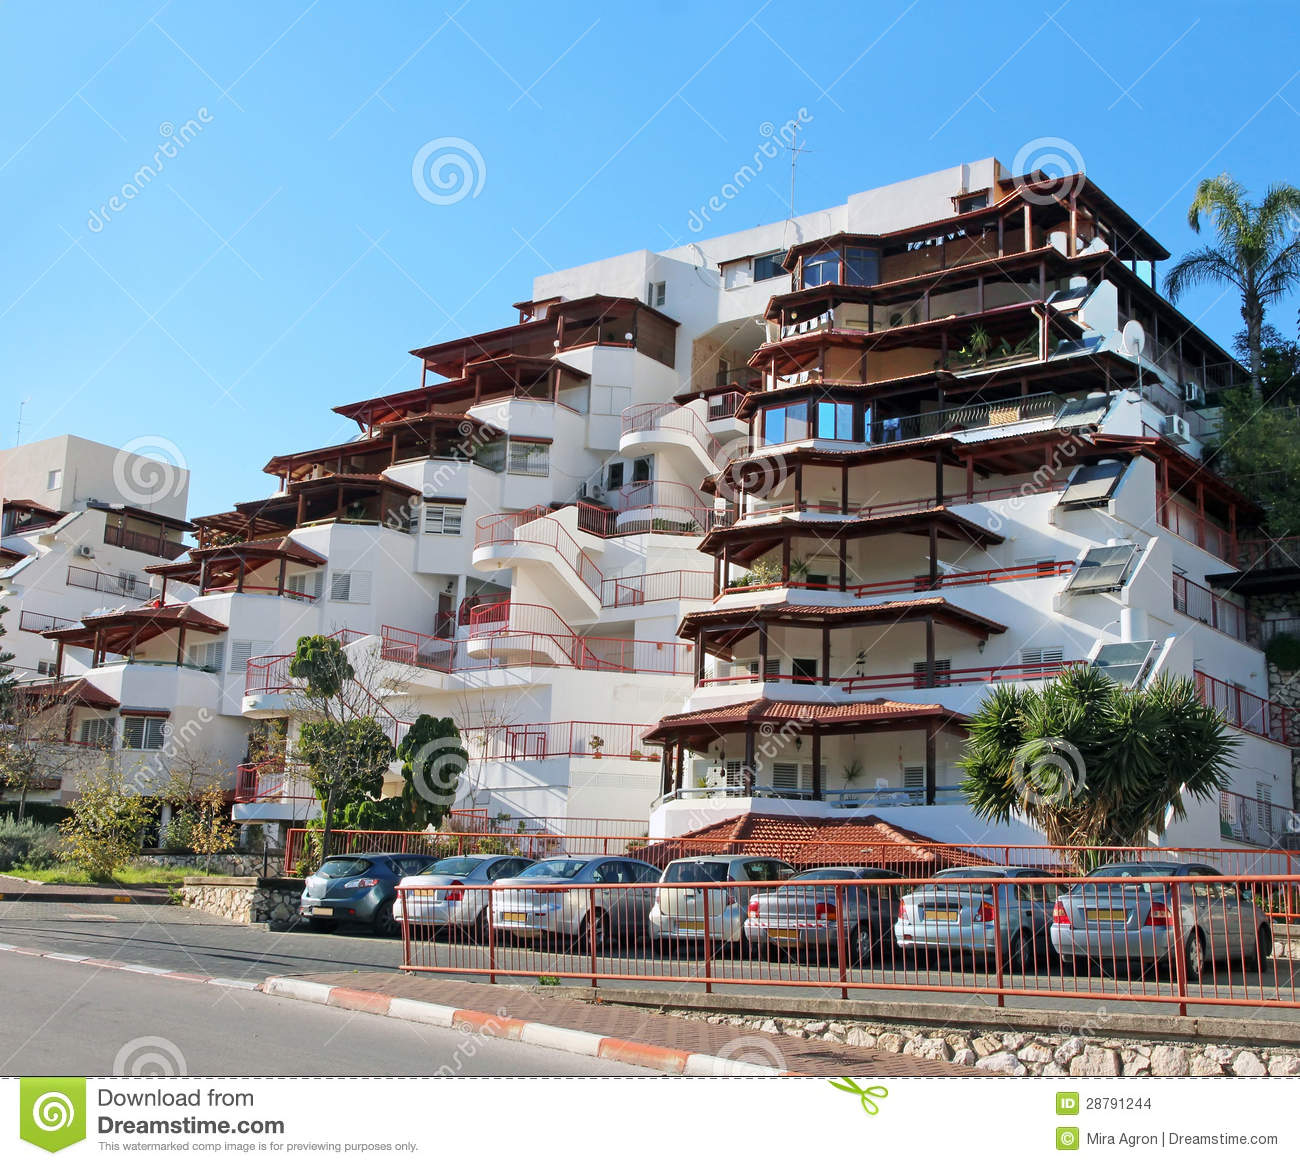 Modern Apartment Building modern apartment building stock images - image: 28791244